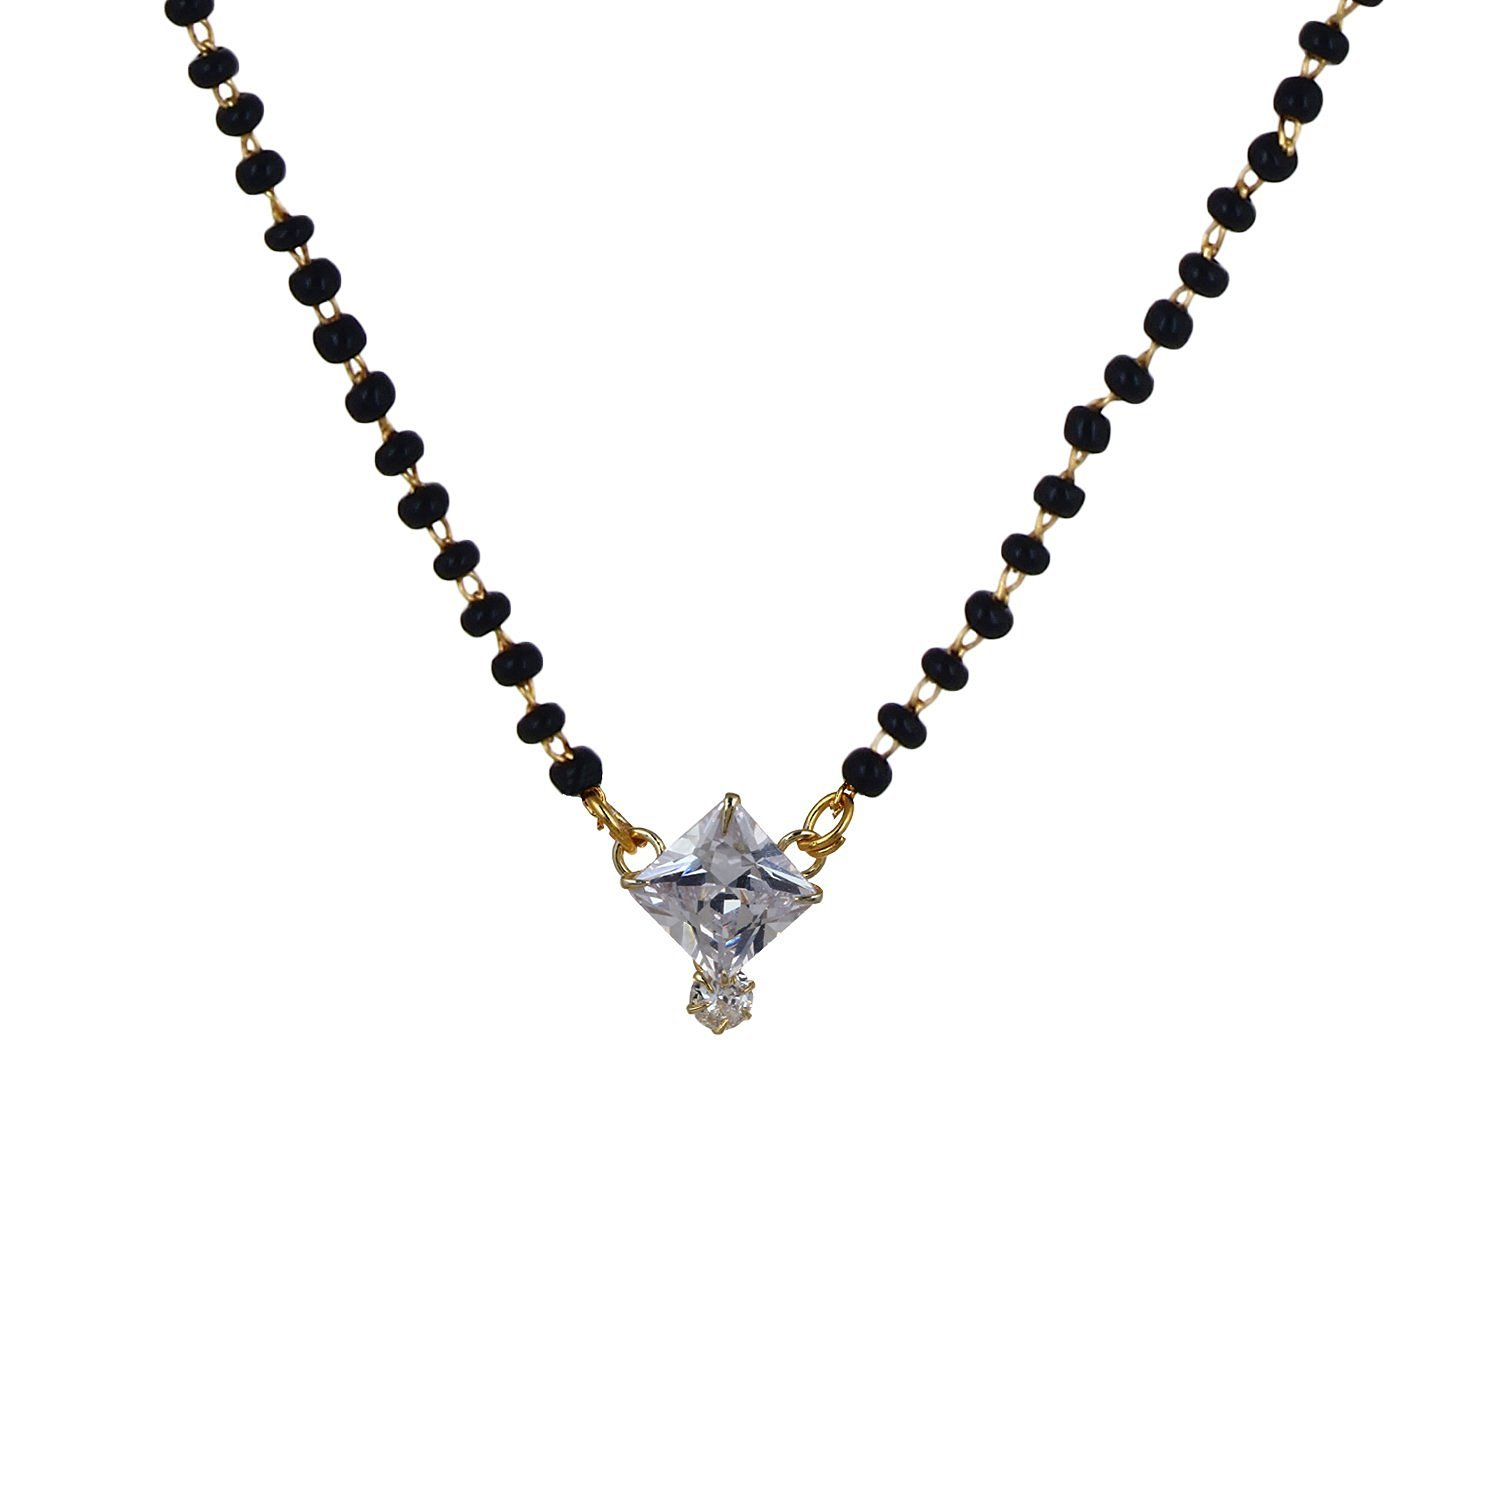 American Diamond Mangalsutra Jewellery For Women